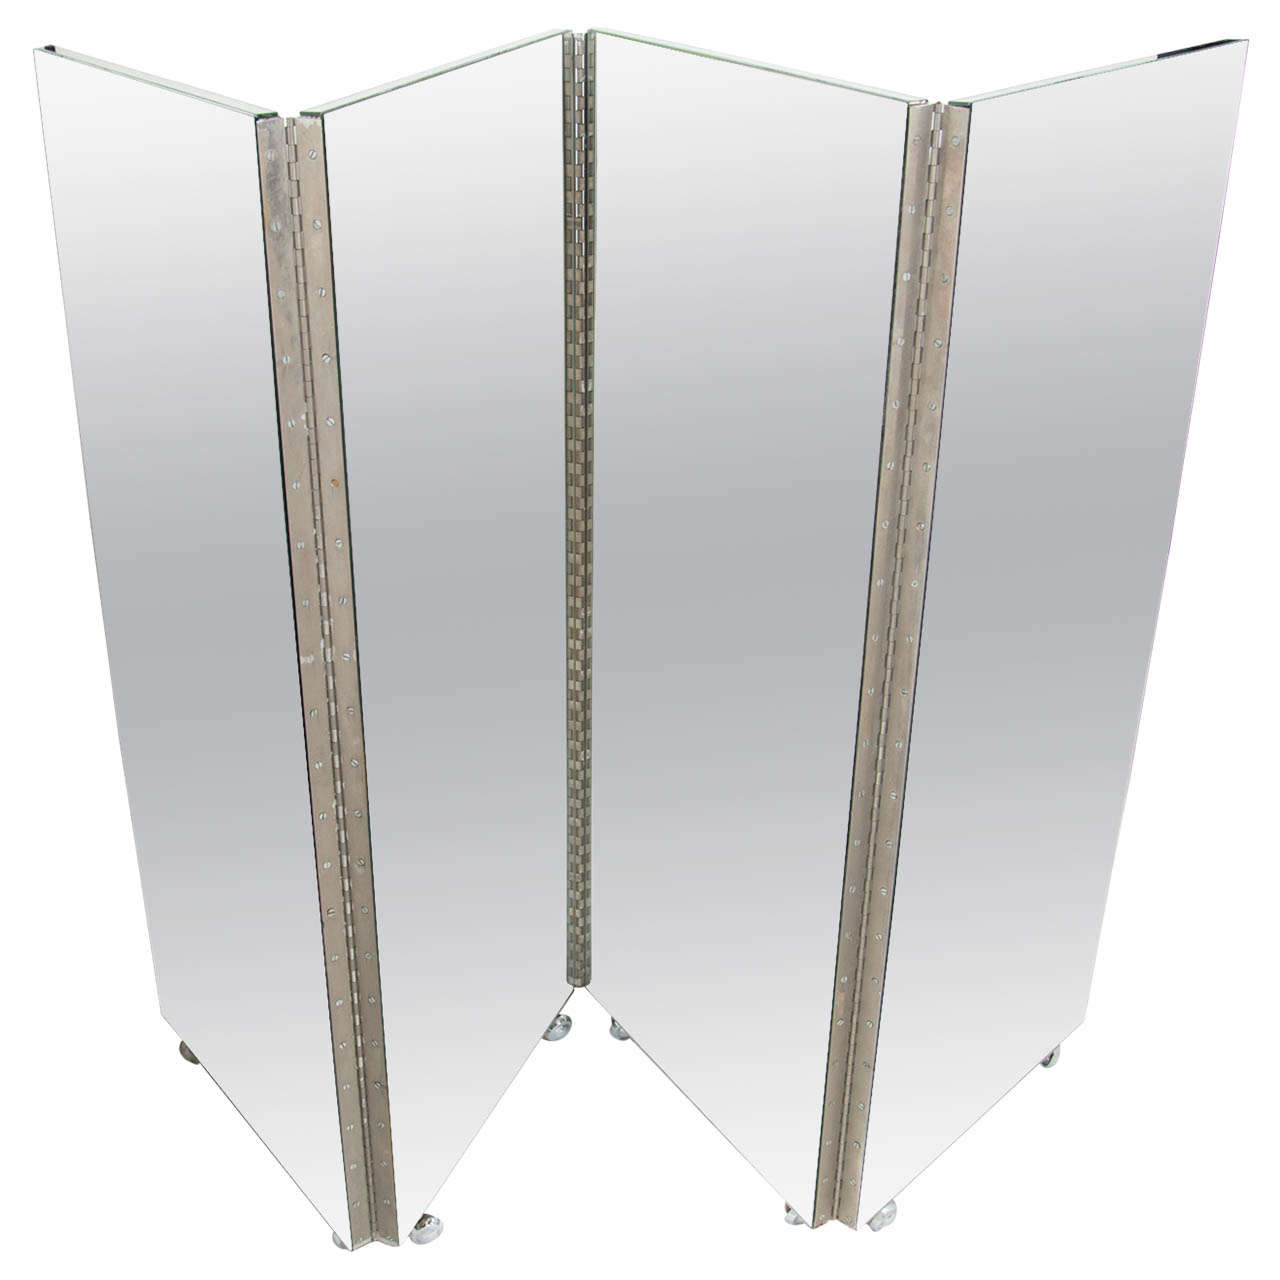 Vintage Mid-Century Modern Four-Panel Mirrored Screen and Room Divider 1